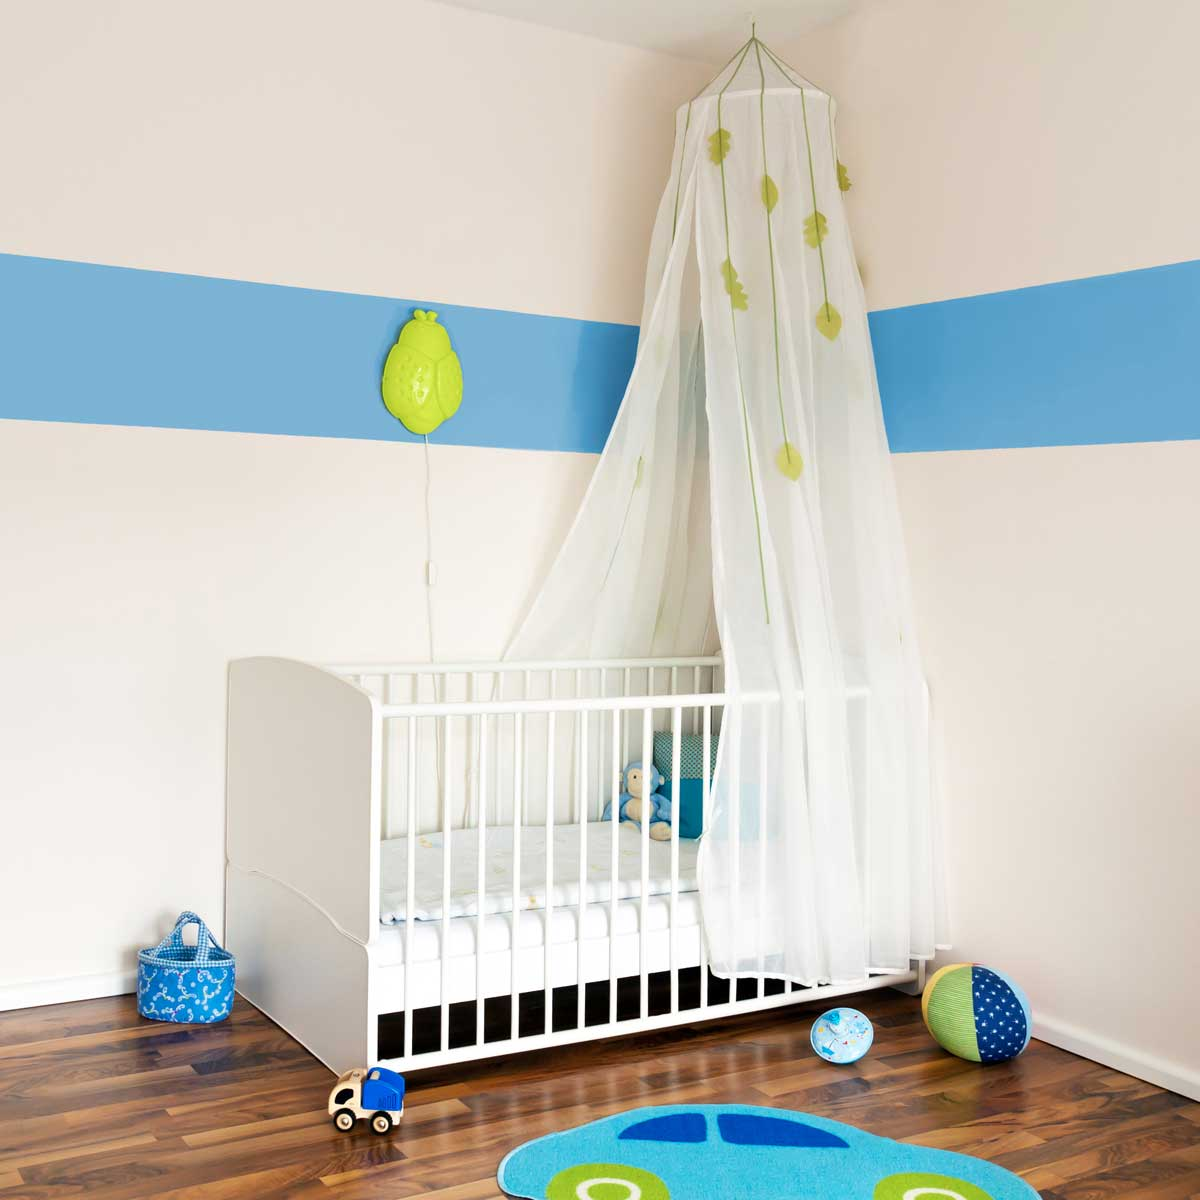 Residential home baby's room interior painted white & light blue